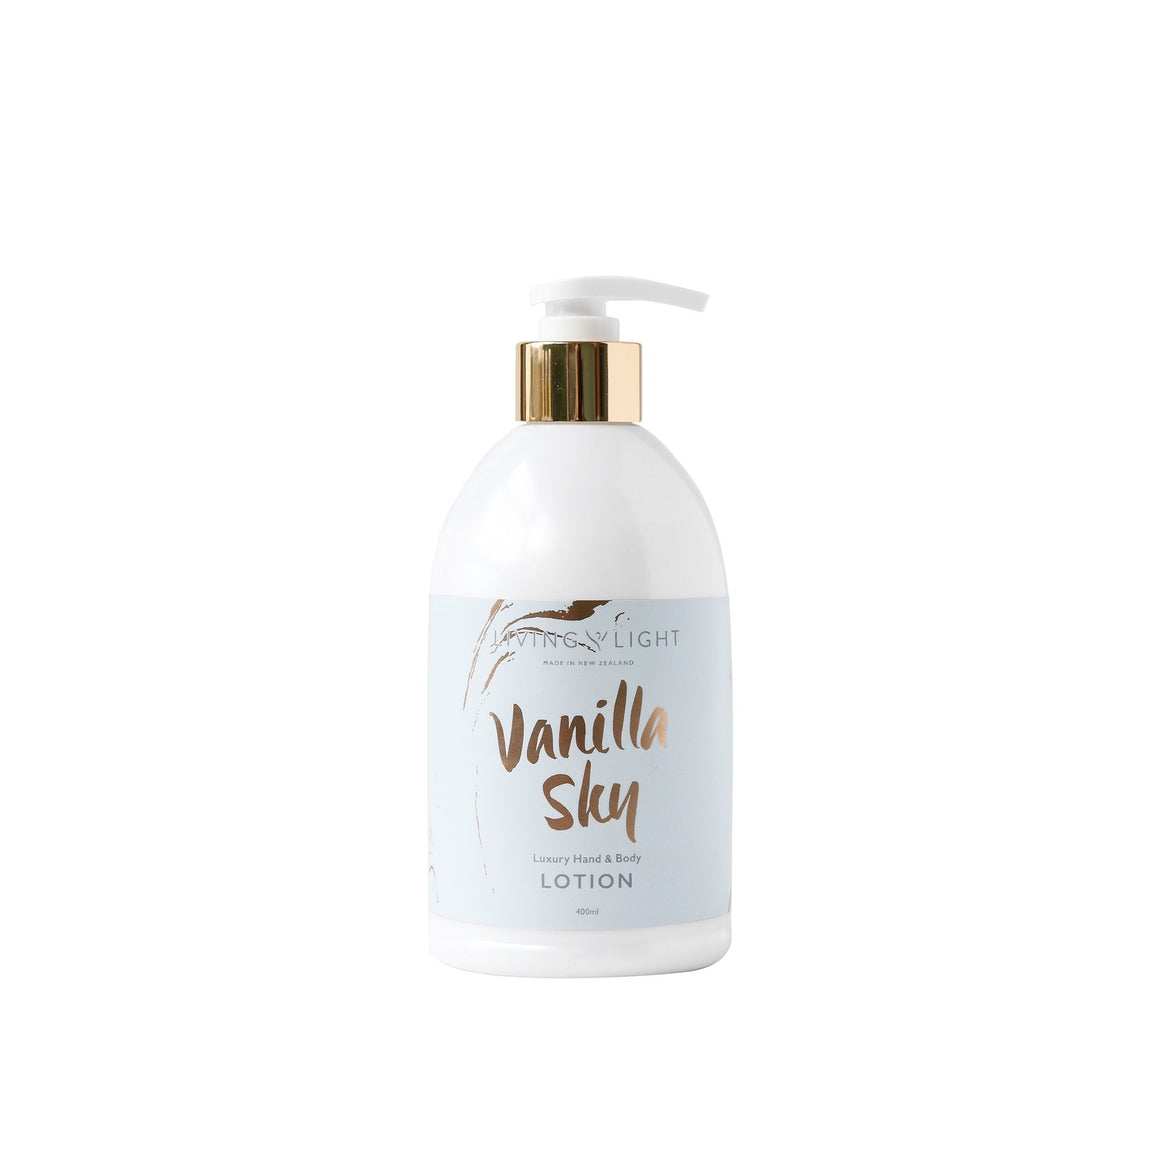 Imagine Hand & Body Lotion - Vanilla Sky